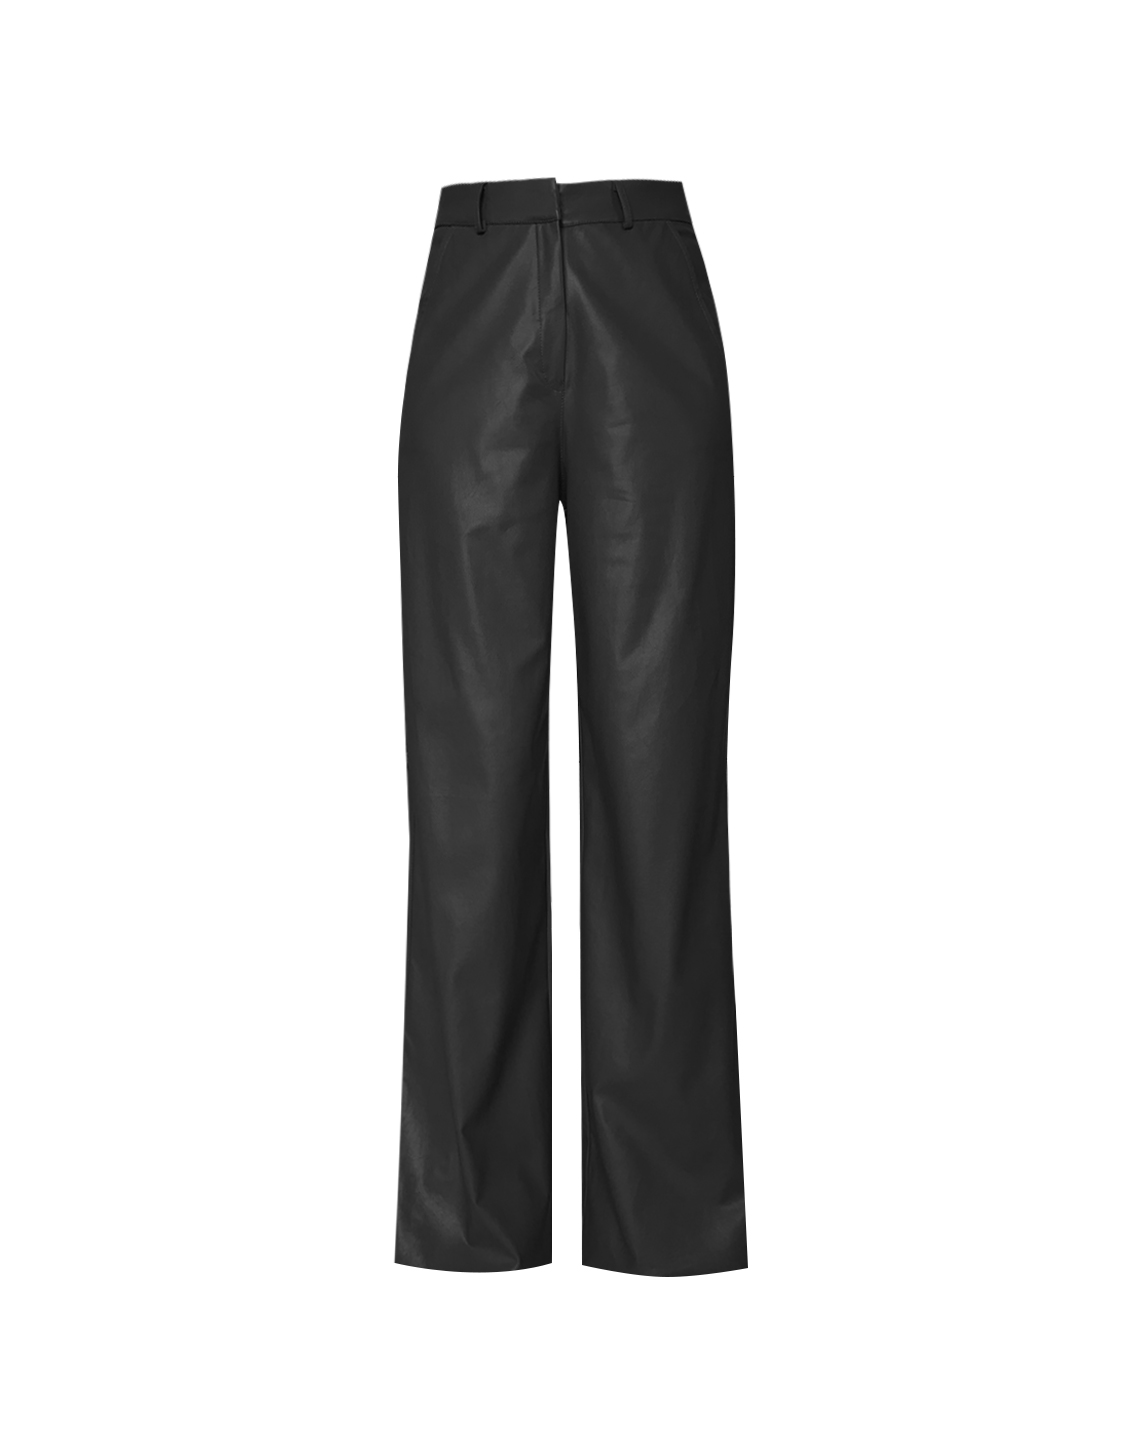 Caspien Pants Leather - Black by Jessica K on curated-crowd.com